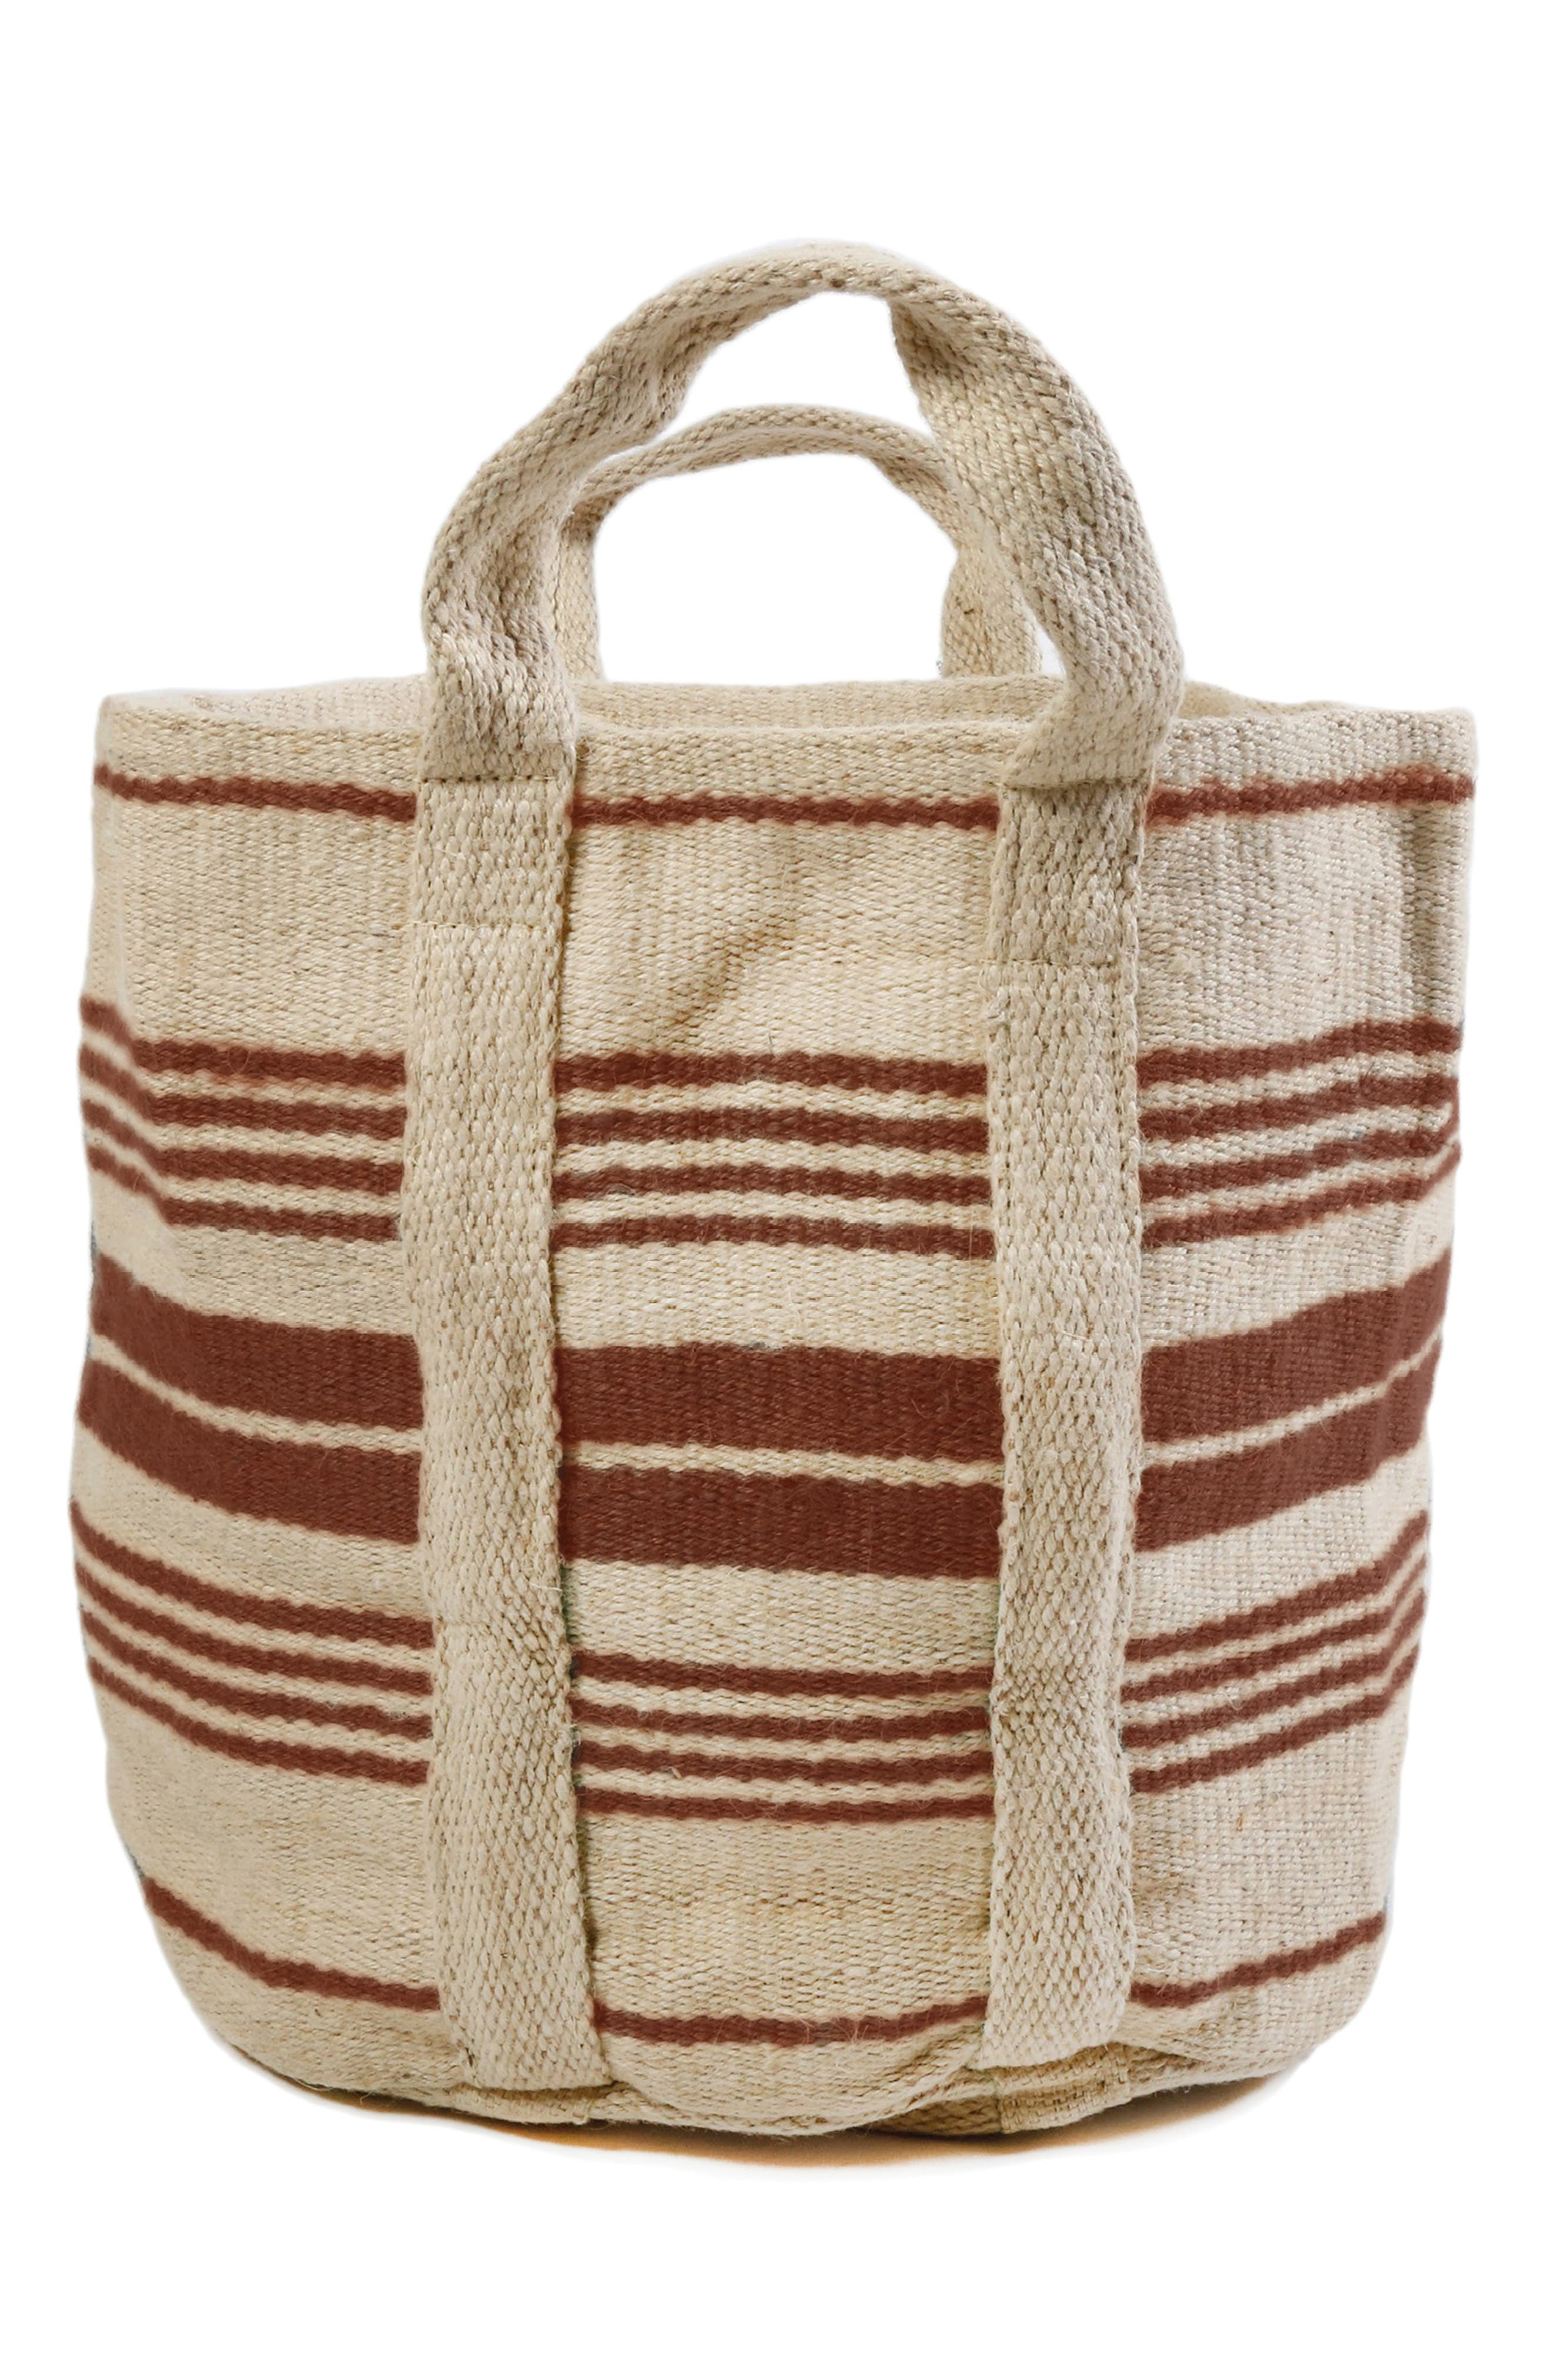 Hand-loomed in sturdy cotton, this stylish striped basket makes a beautiful organizer for magazines, linens, toys and more. Style Name: Pom Pom At Home Savannah Handwoven Basket. Style Number: 5857460. Available in stores.